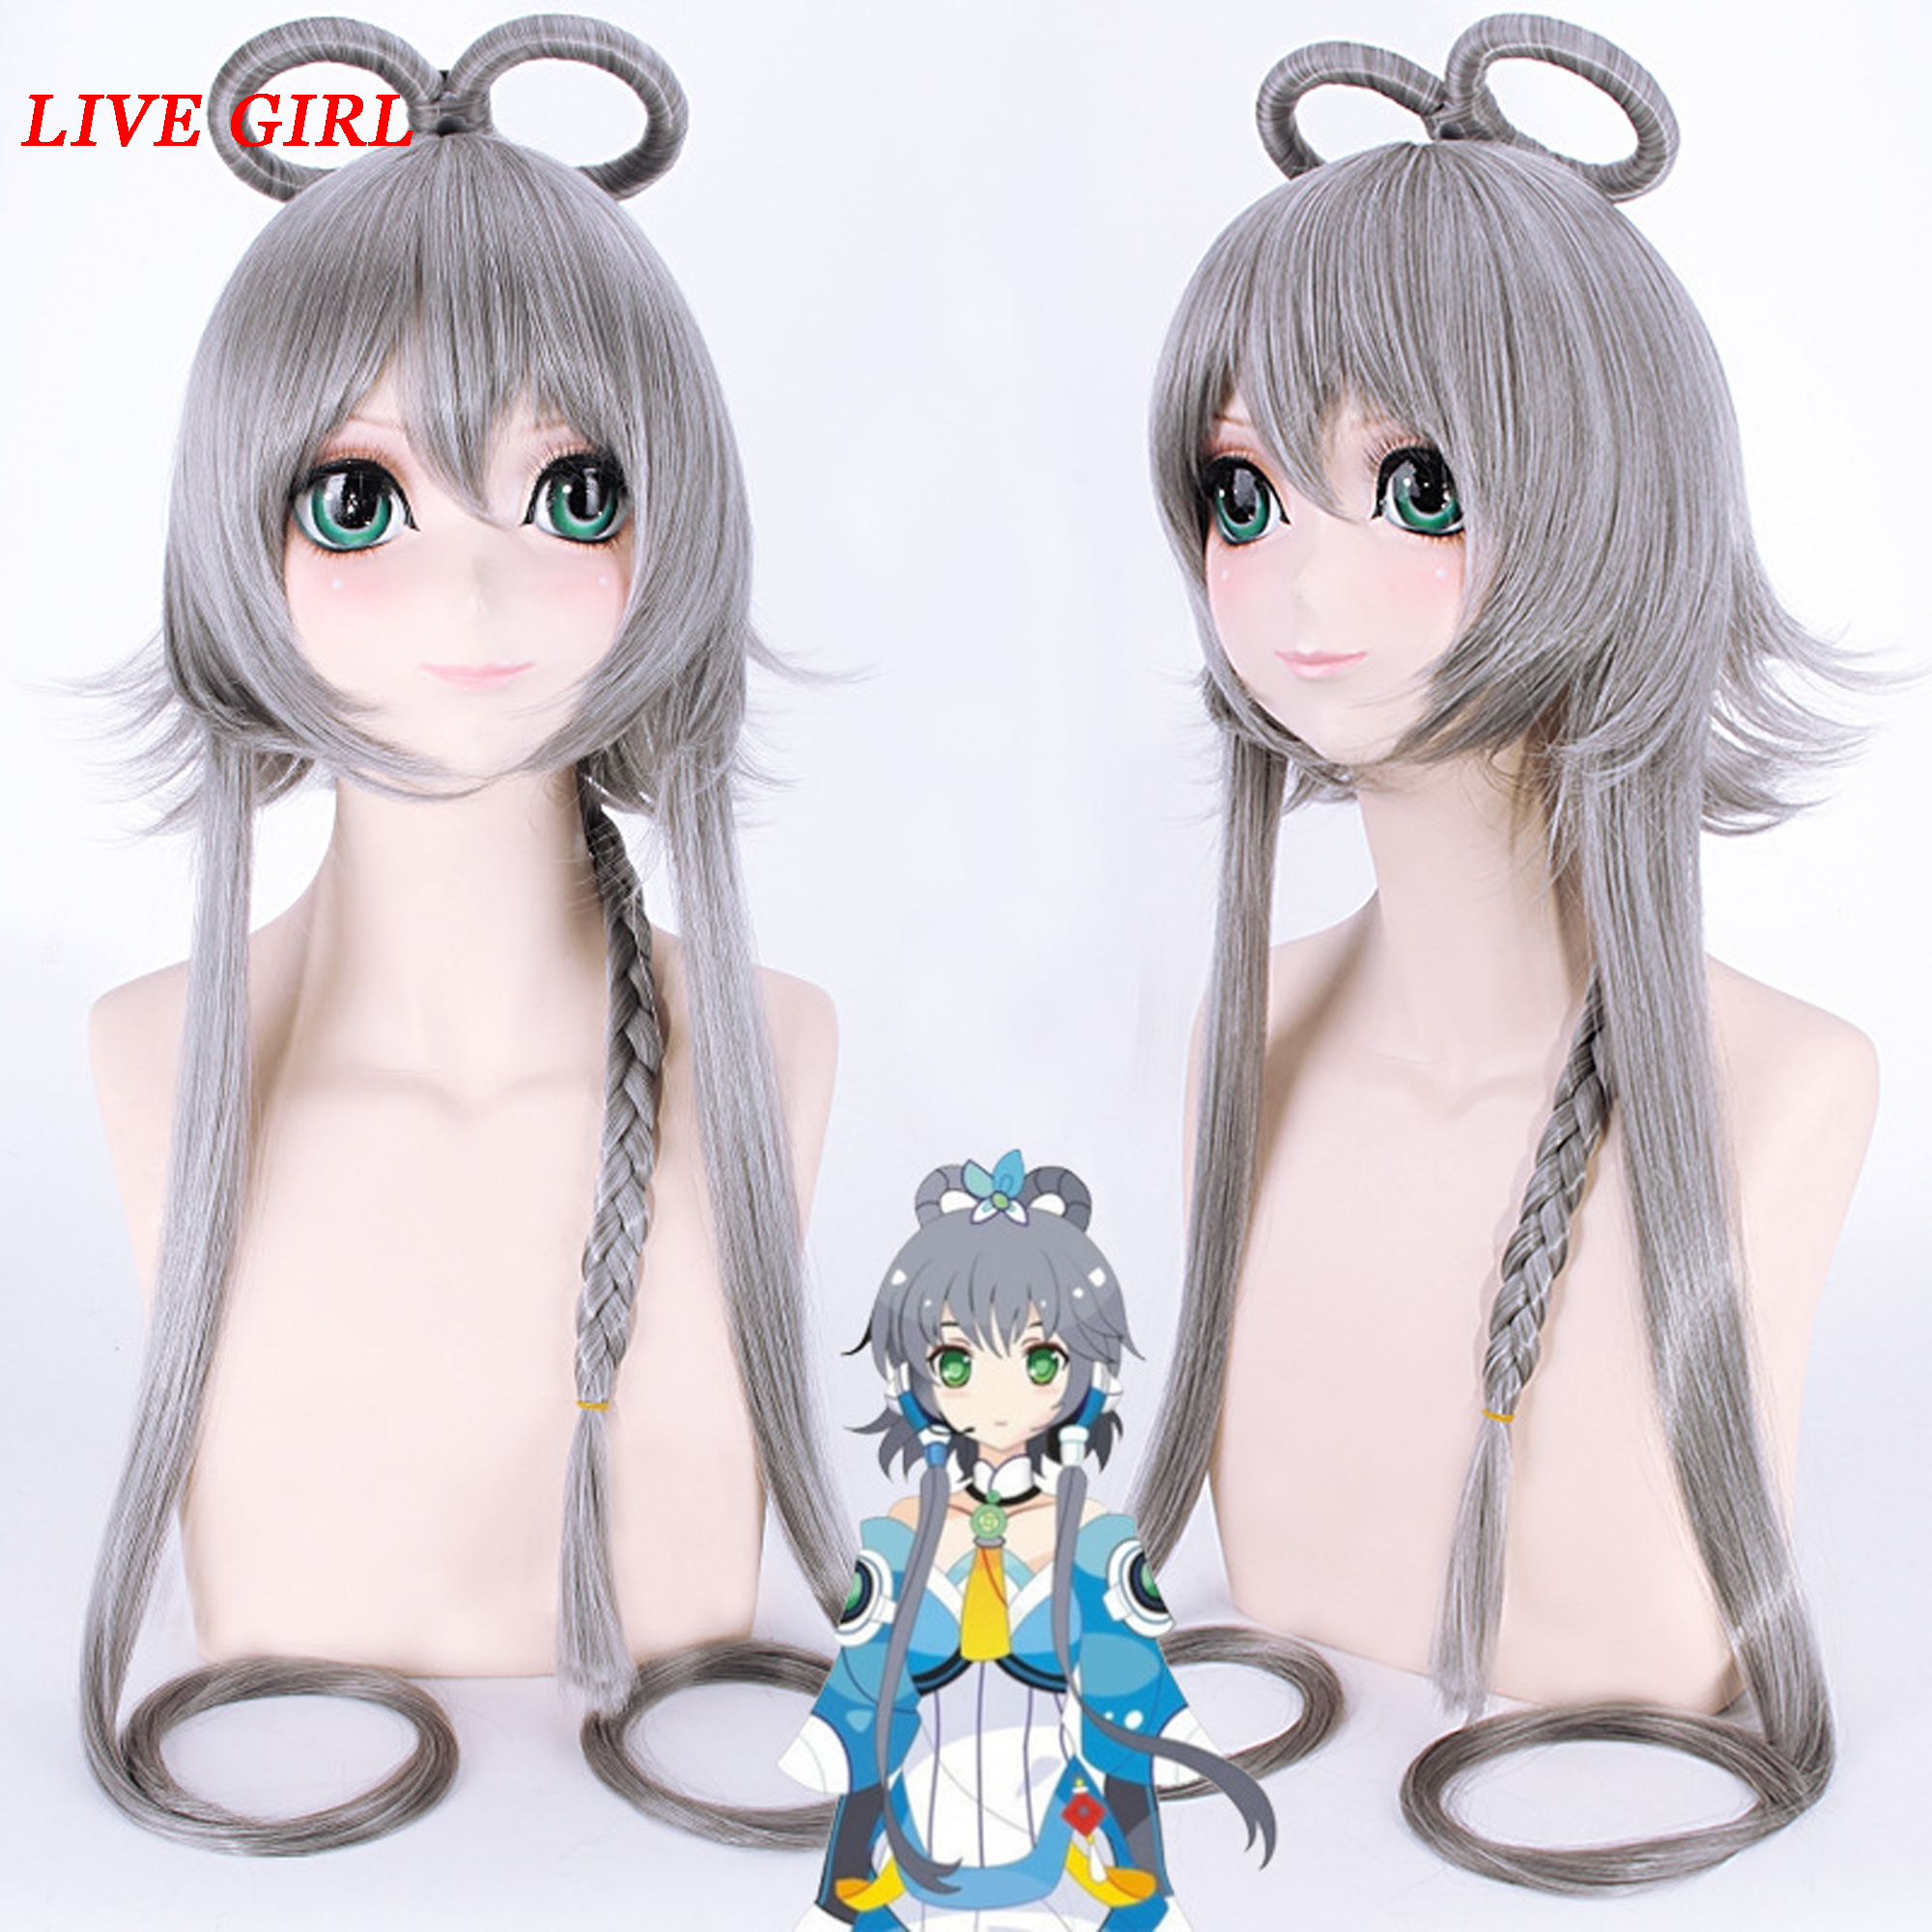 liva-girl-luo-tianyi-cosplay-wig-font-b-vocaloid-b-font-costume-play-wigs-halloween-costumes-hair-free-shipping-2017-new-high-quality